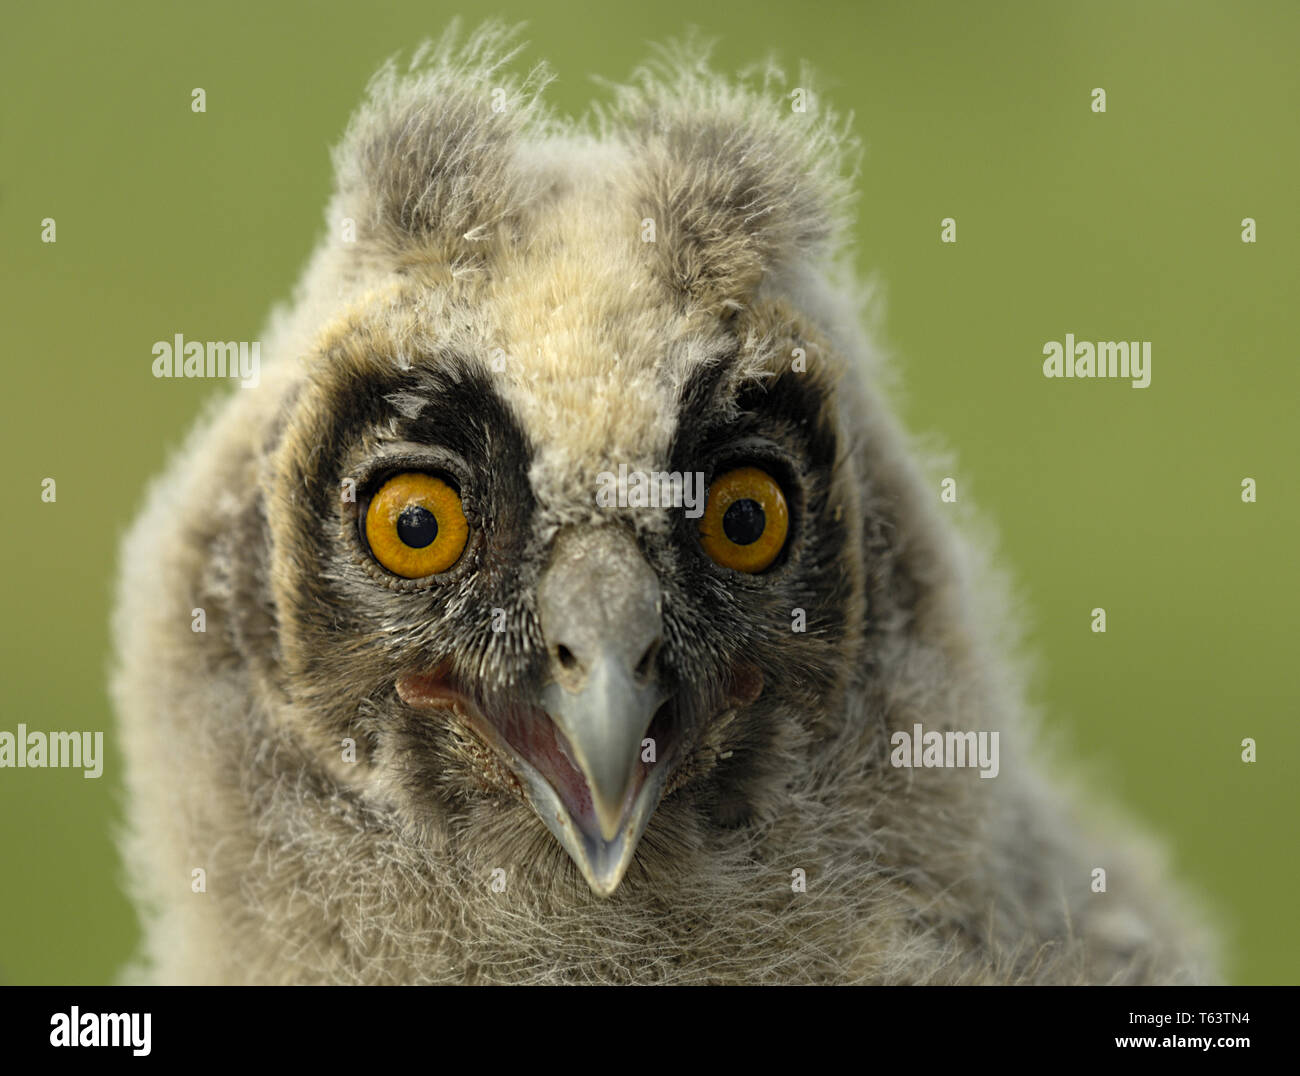 Long-eared owl, Asio otus, Europe - Stock Image